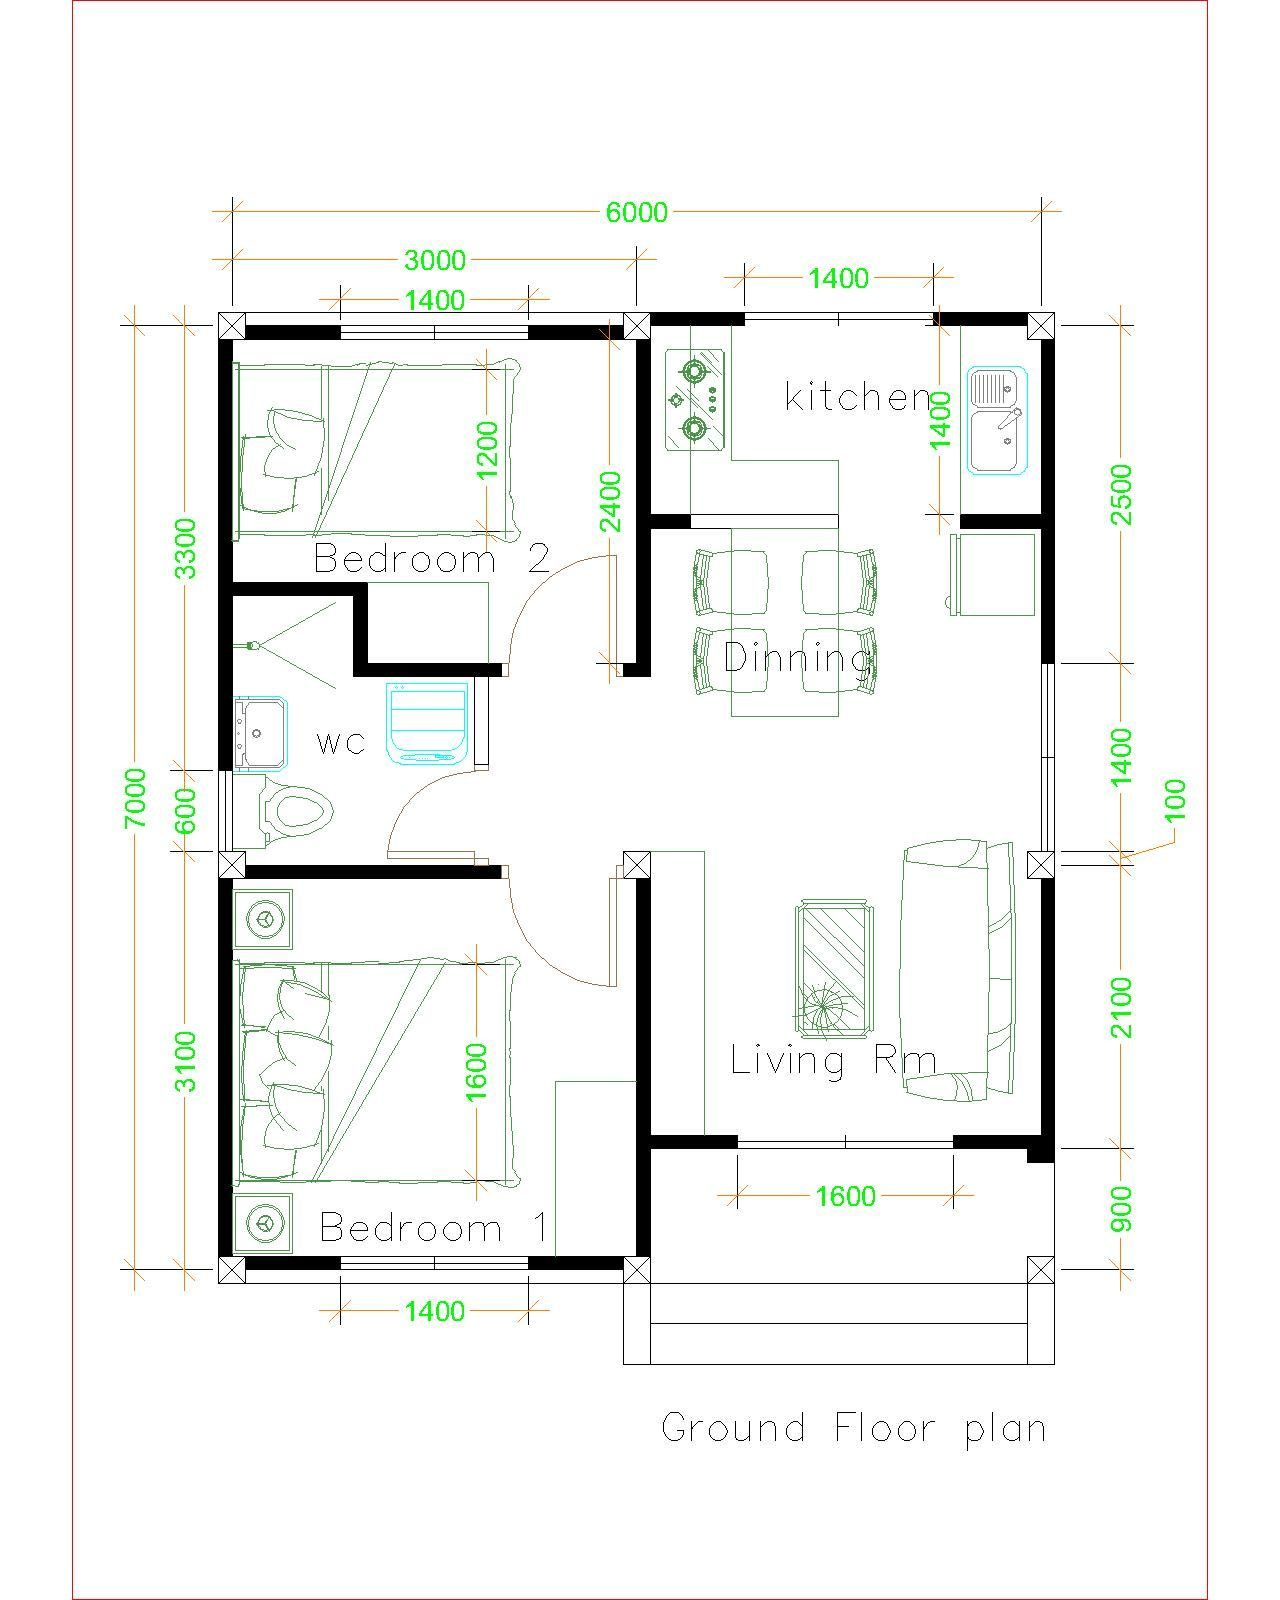 Simple House Plans 6x7 With 2 Bedrooms Shed Roof House Plans 3d Unique House Plans Simple House Plans Small House Plans